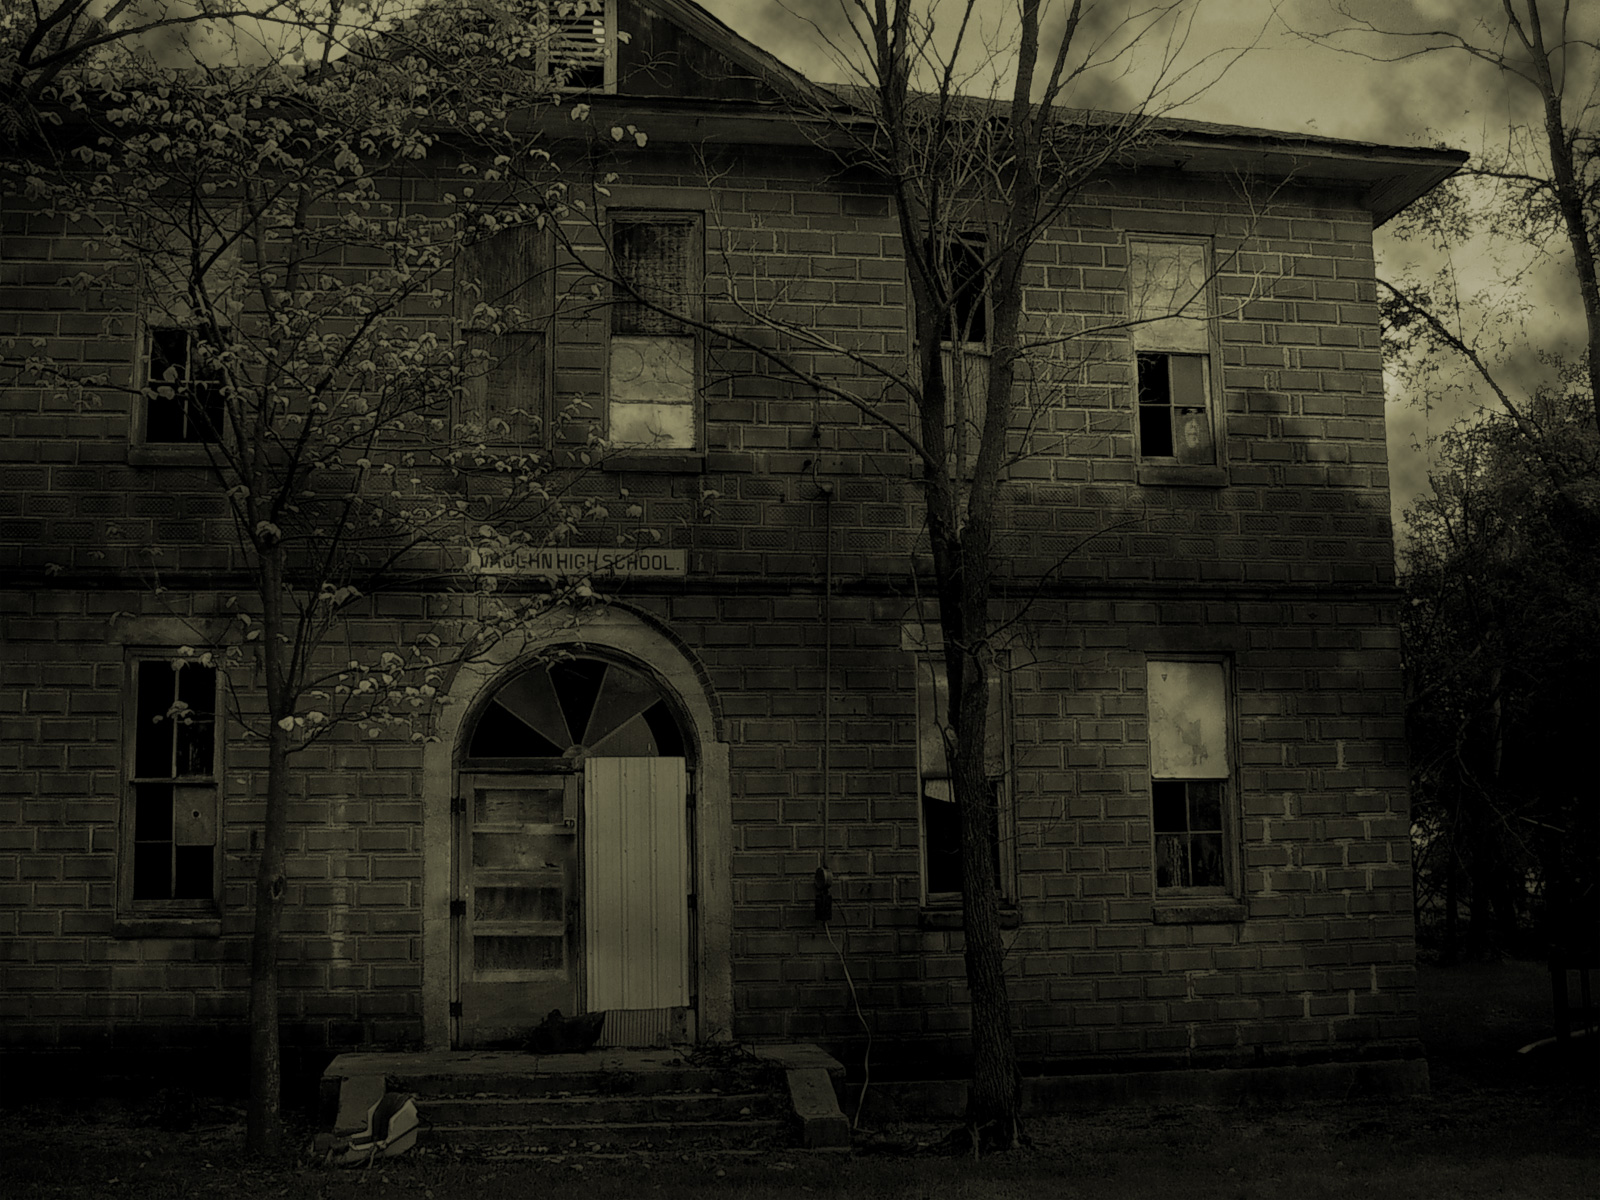 Haunted house computer wallpapers desktop backgrounds for Wallpaper for house wall